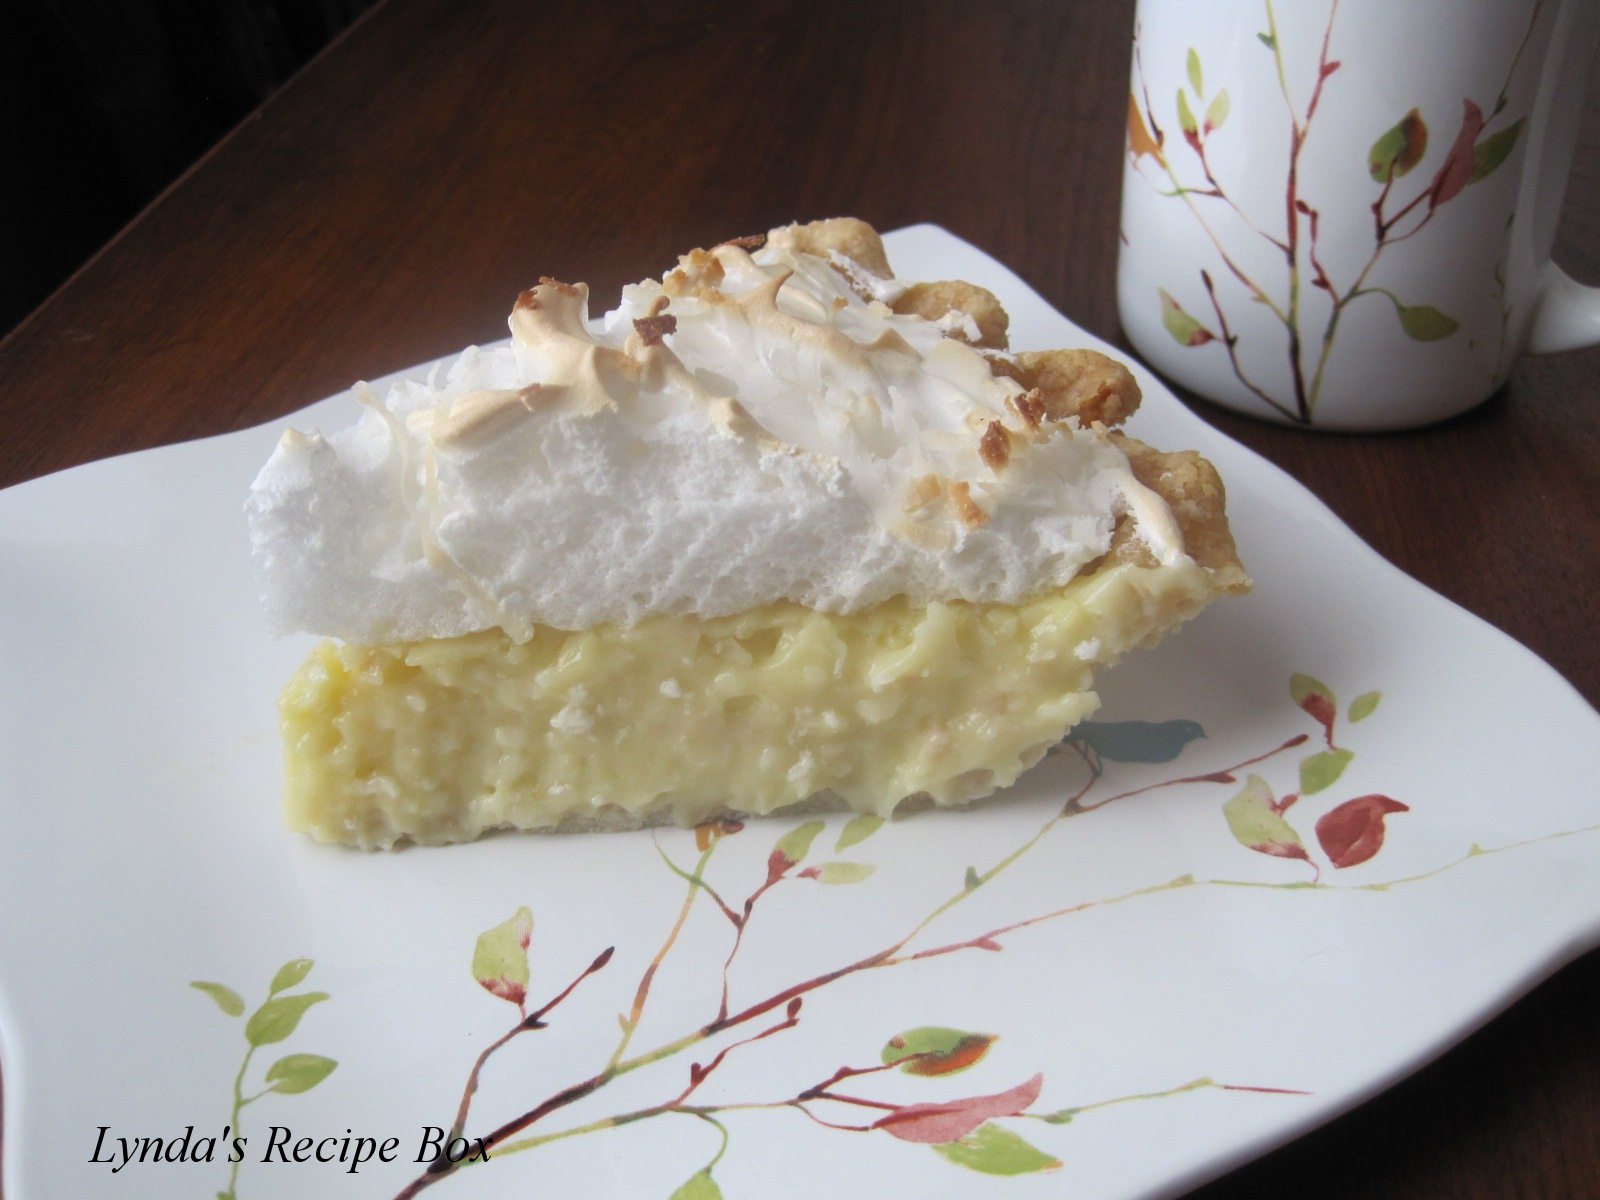 Lynda's Recipe Box: Classic Coconut Cream Pie